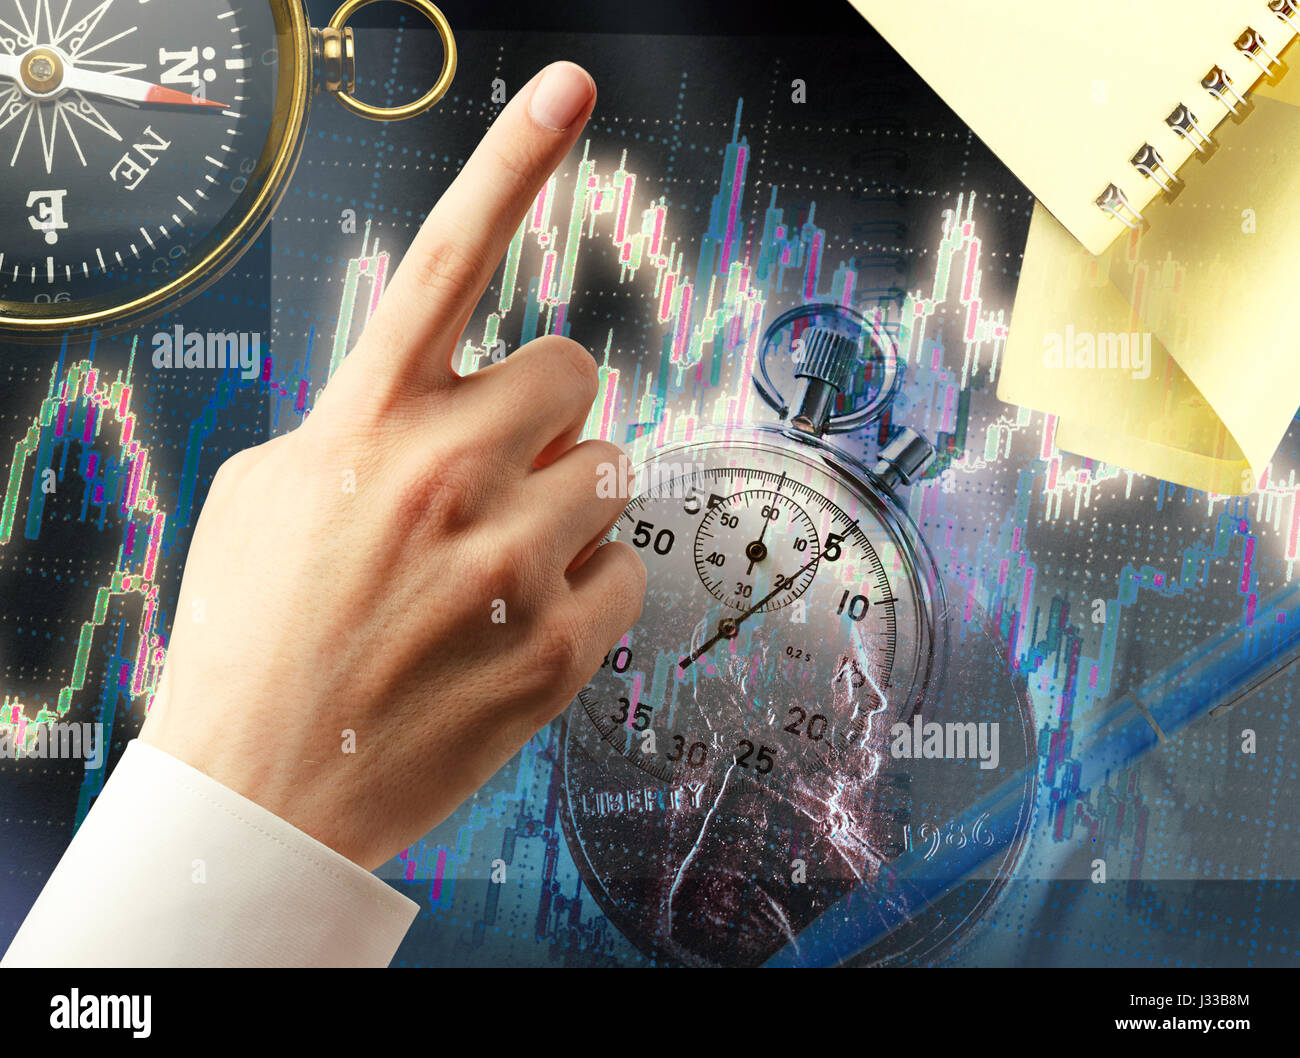 Candlestick chart graphic and black compass in light Stock Photo